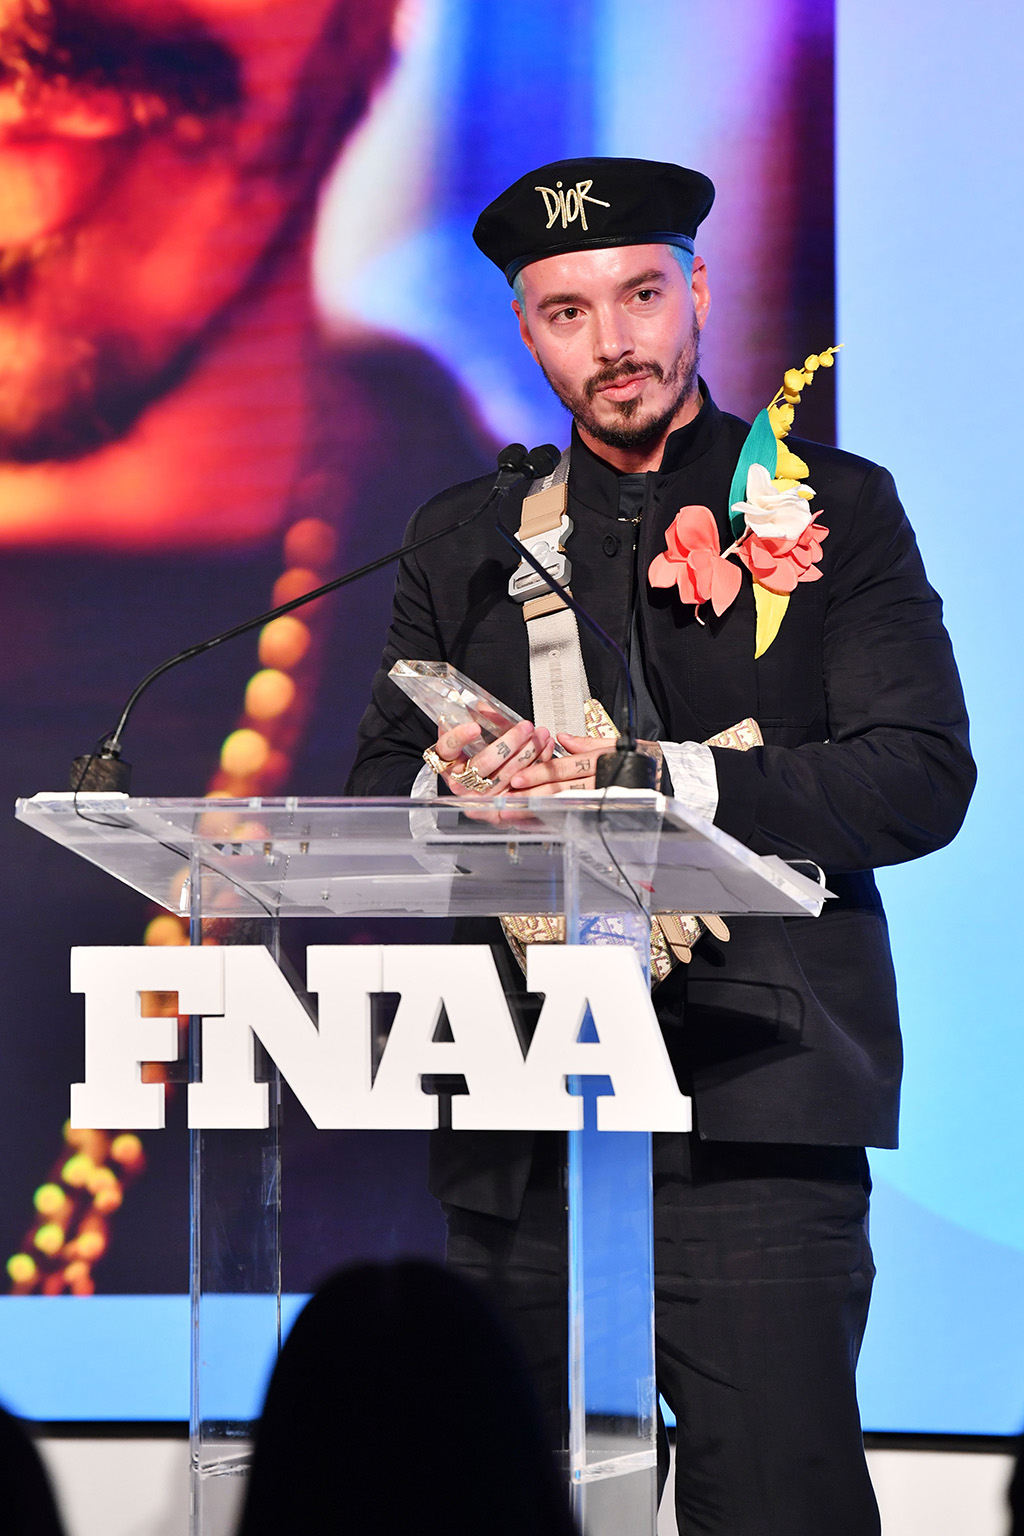 J Balvin33rd Annual Footwear News Achievement Awards, Inside, New York, USA - 03 Dec 2019